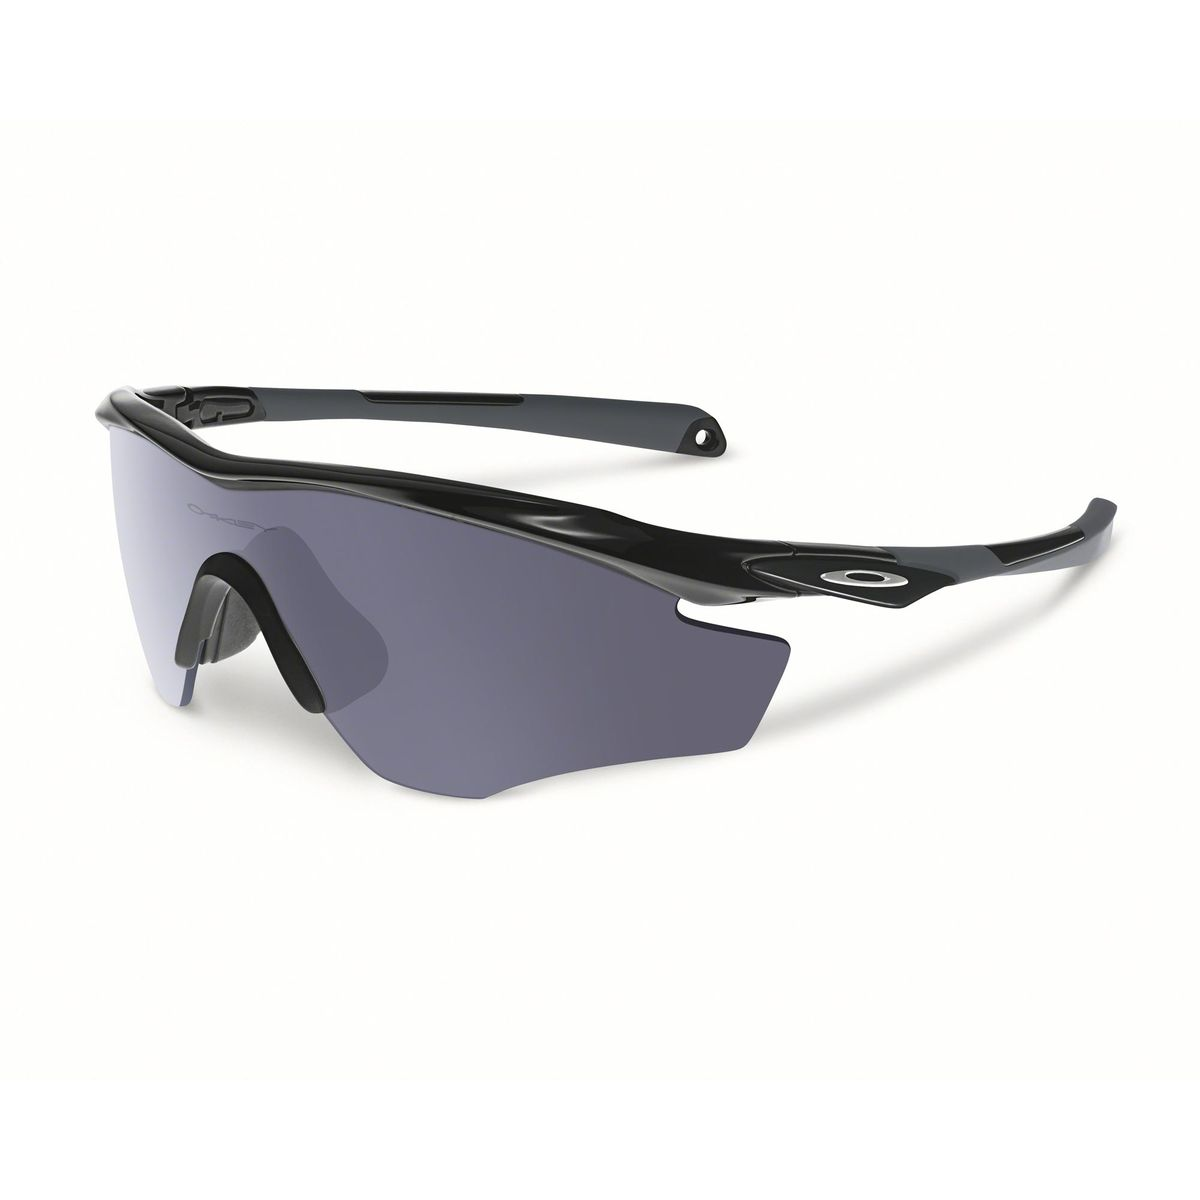 M2 FRAME XL sports glasses